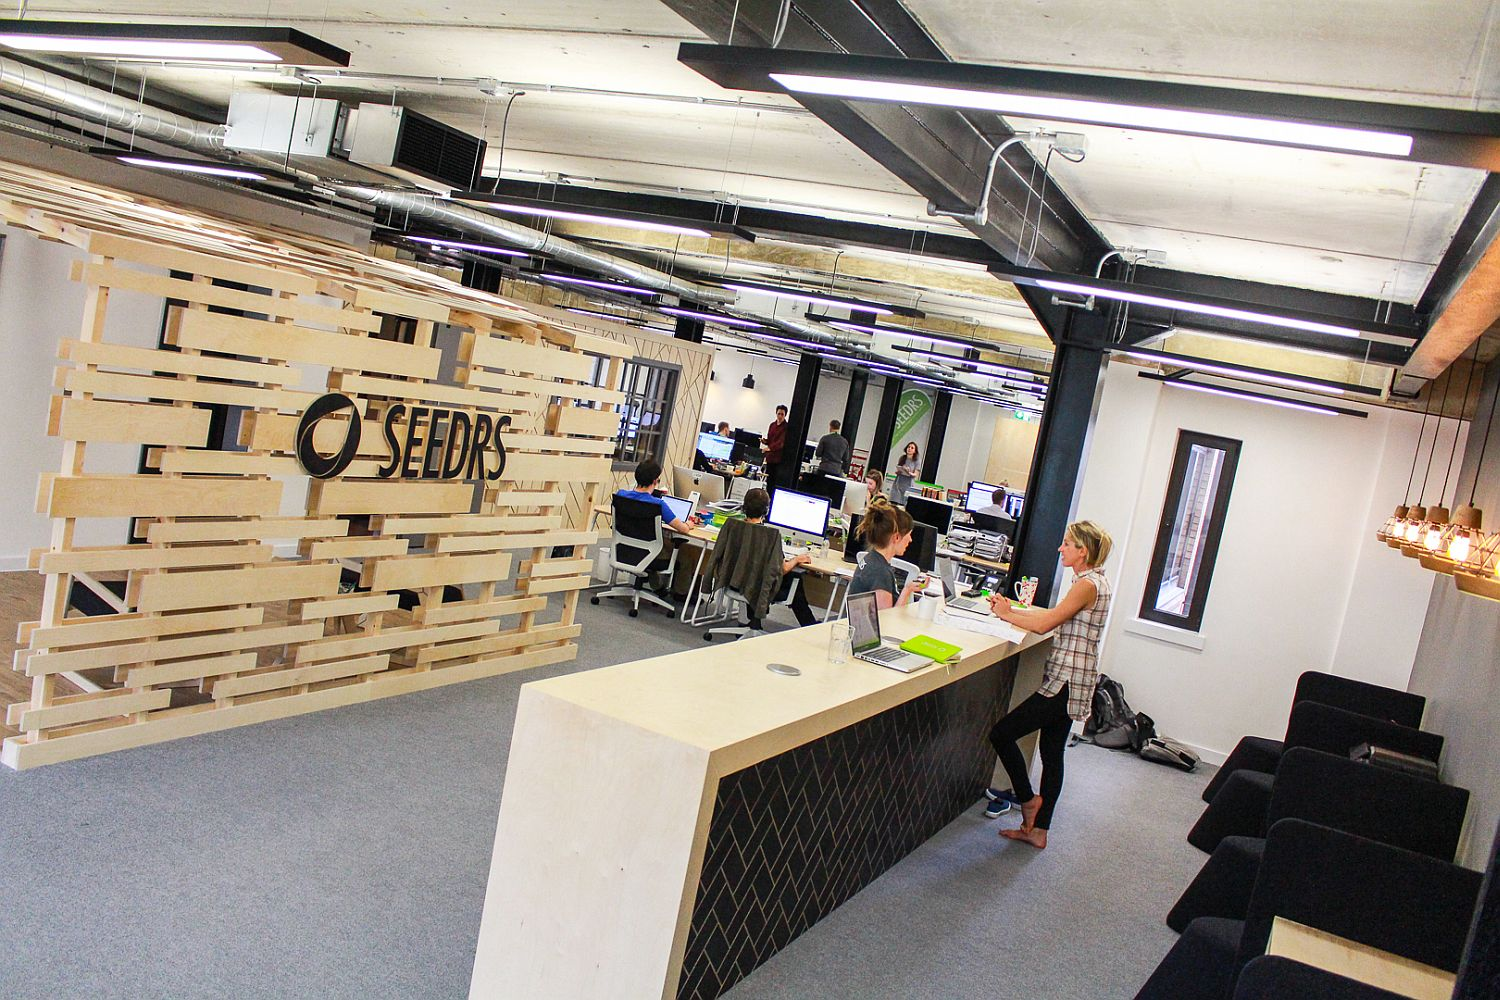 Birch Ply canopy greets you at the reception area of Seedrs